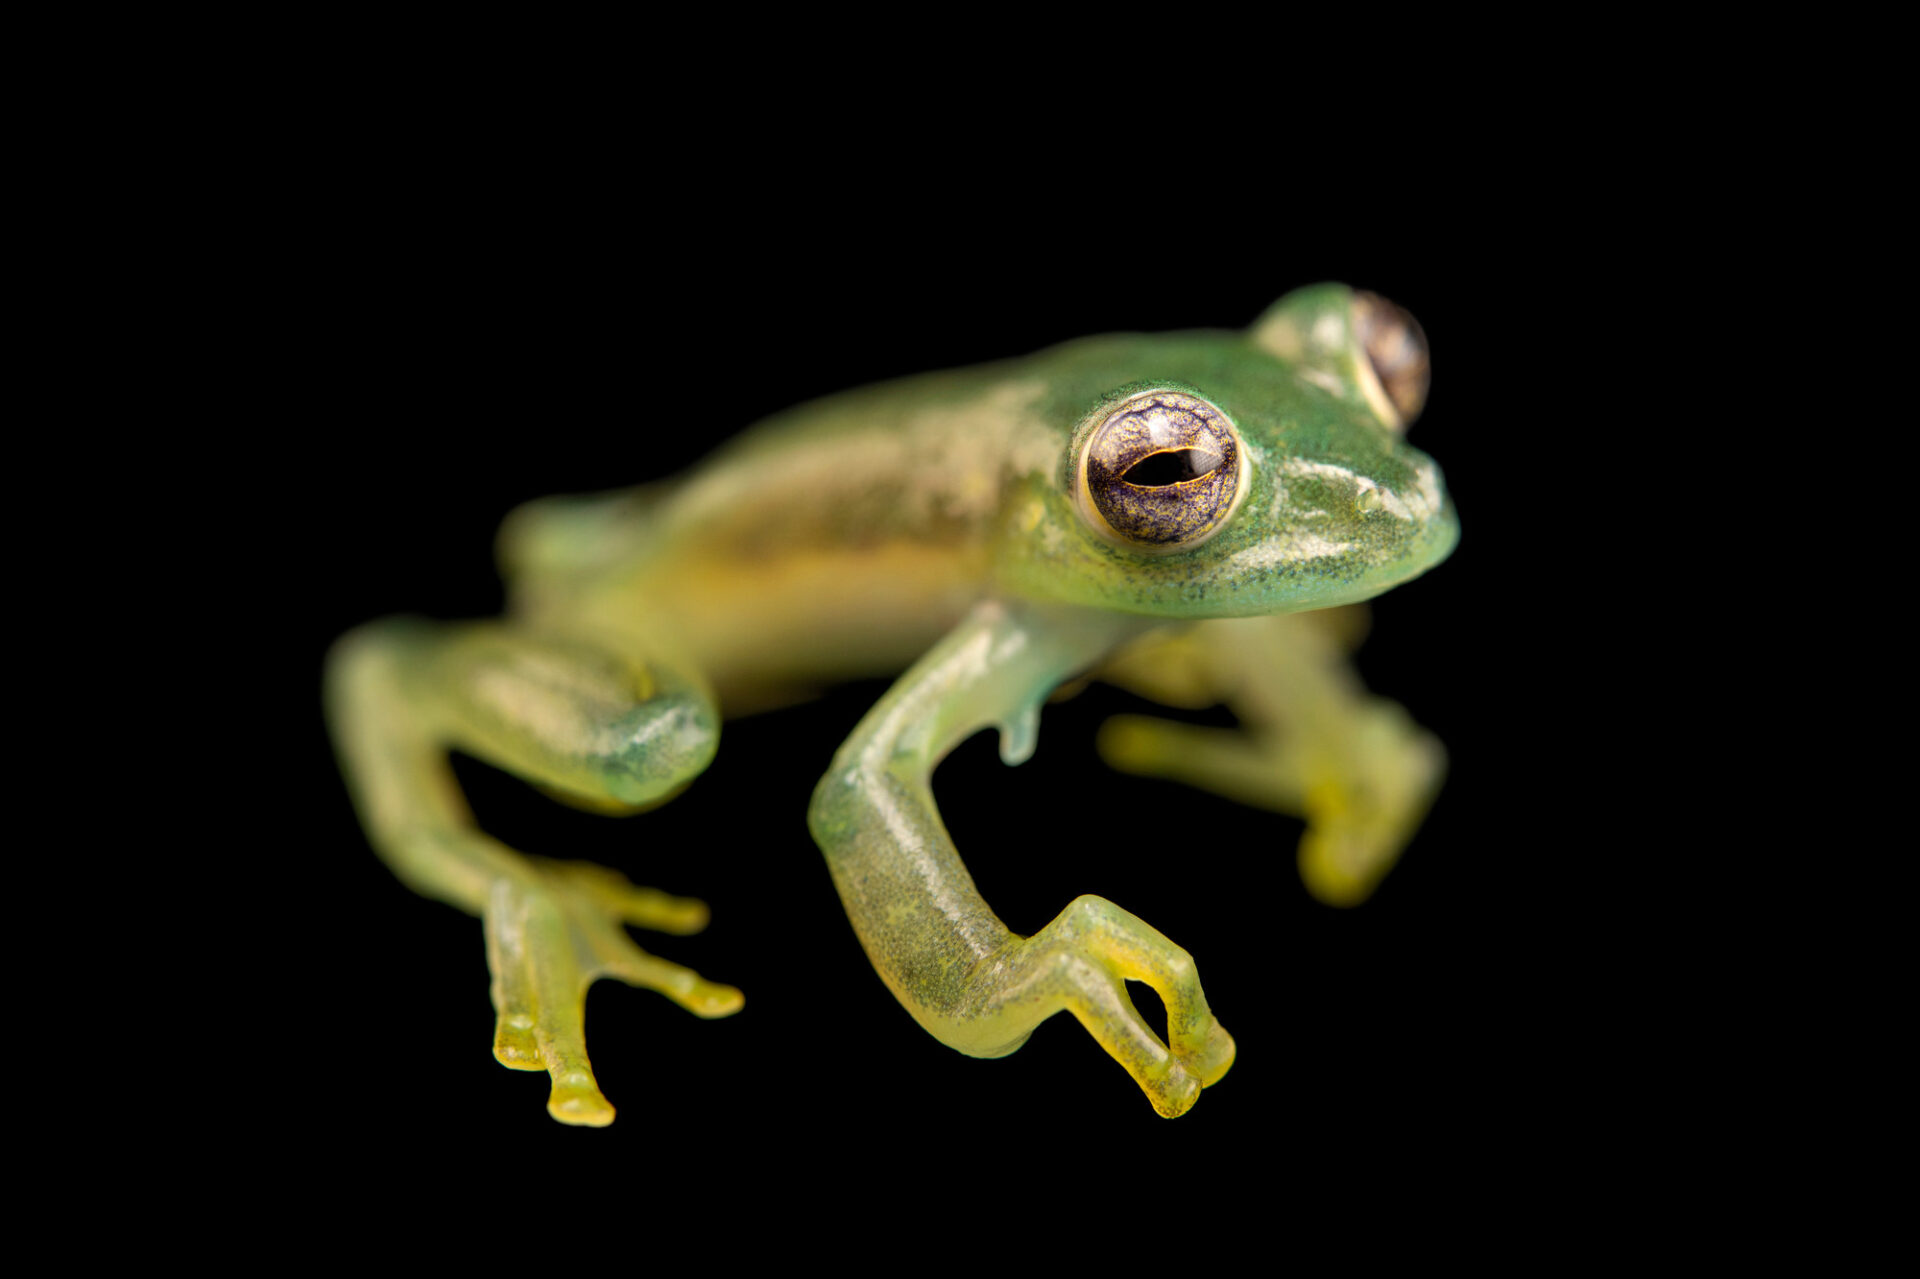 Photo: A glass frog (Nymphargus posadae) at Balsa de los Sapos.